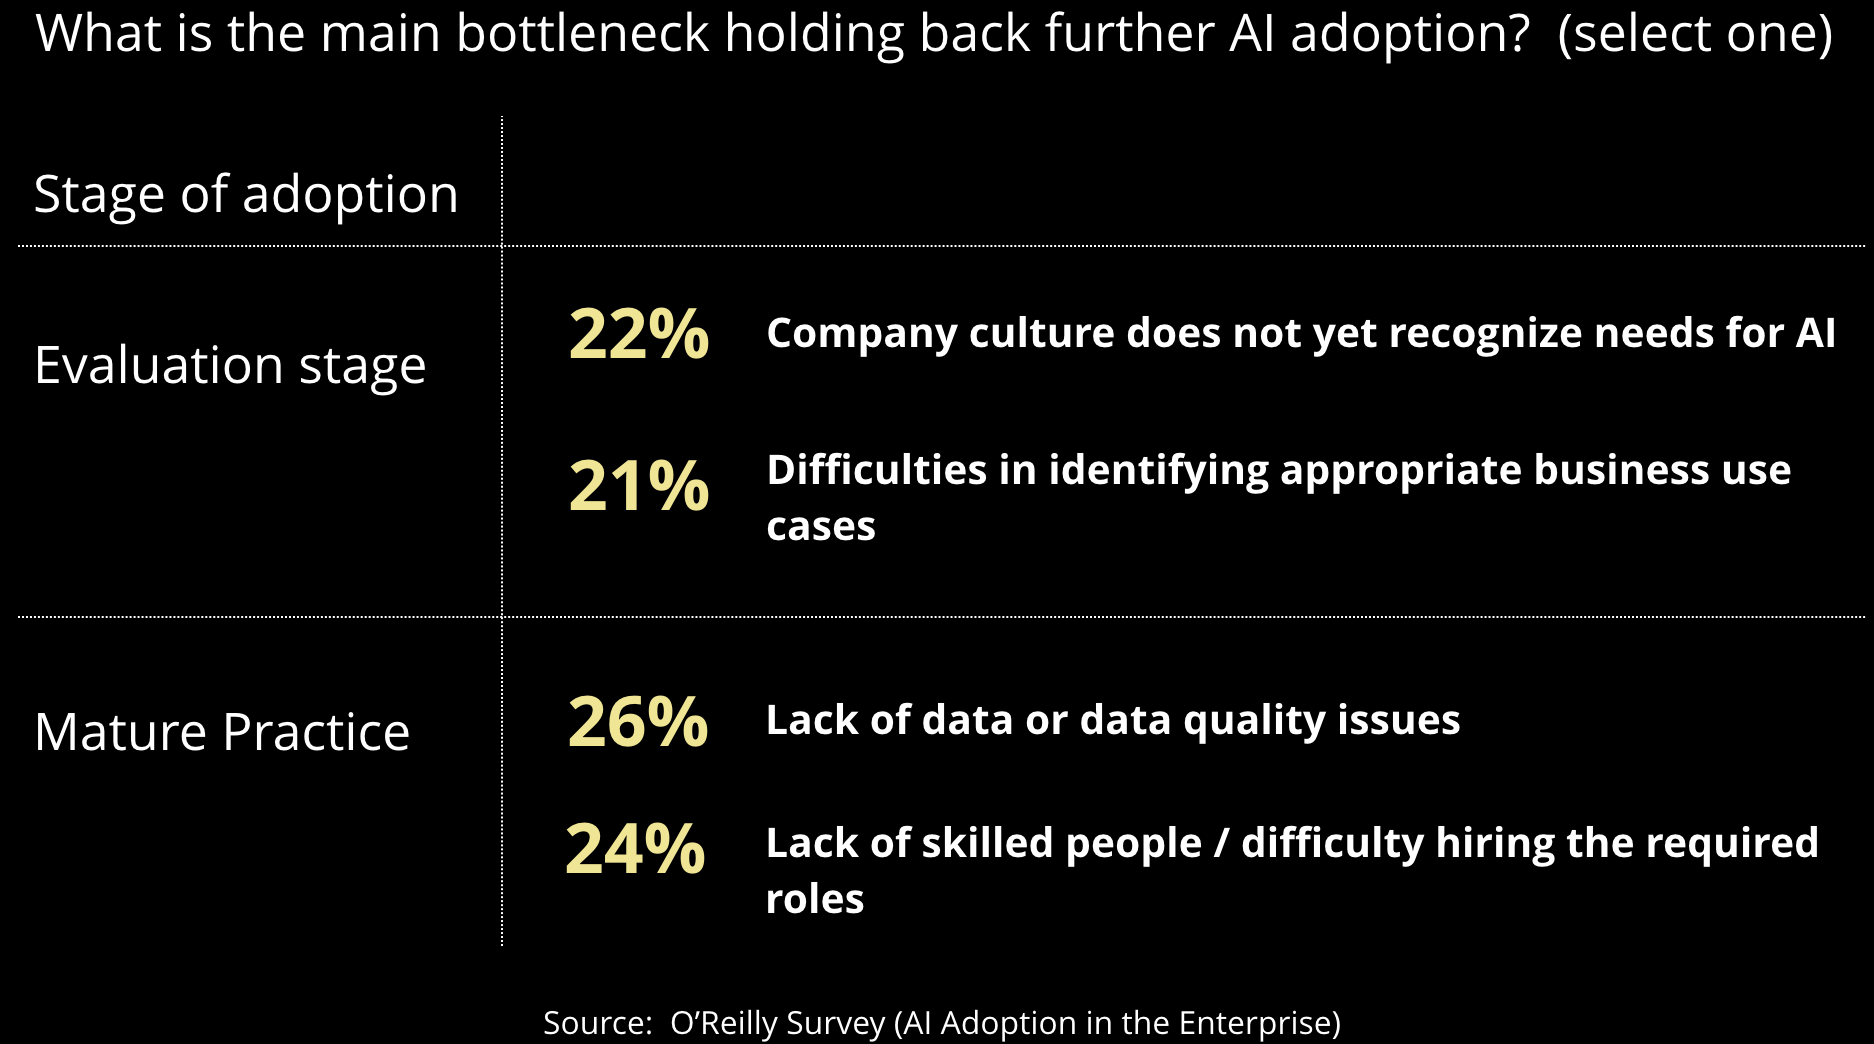 bottlenecks holding back adoption of AI